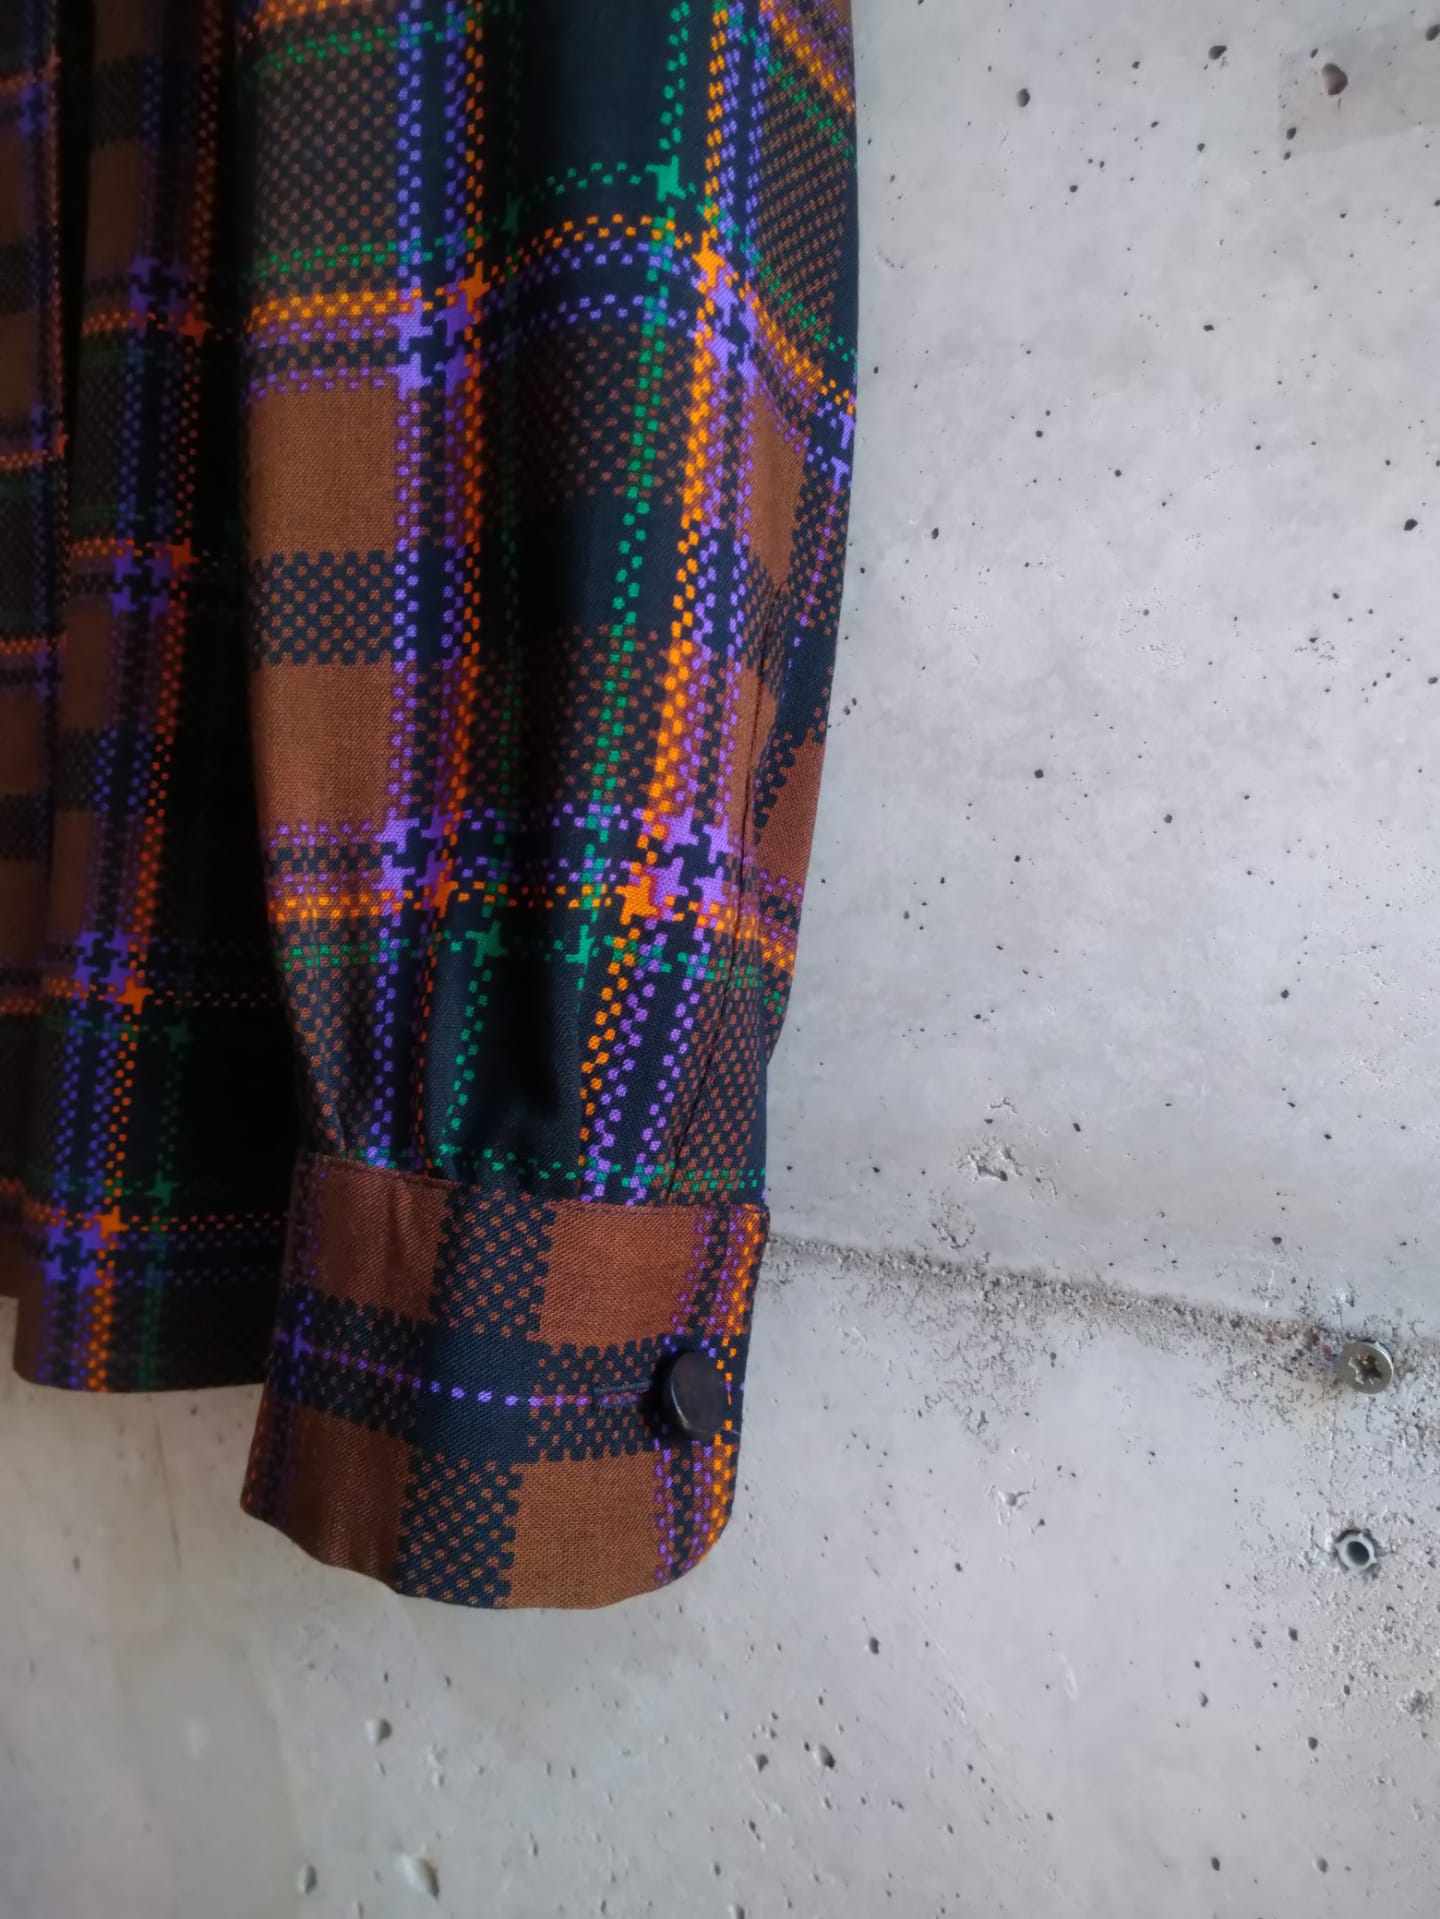 Yves Saint Laurent plaid shirt